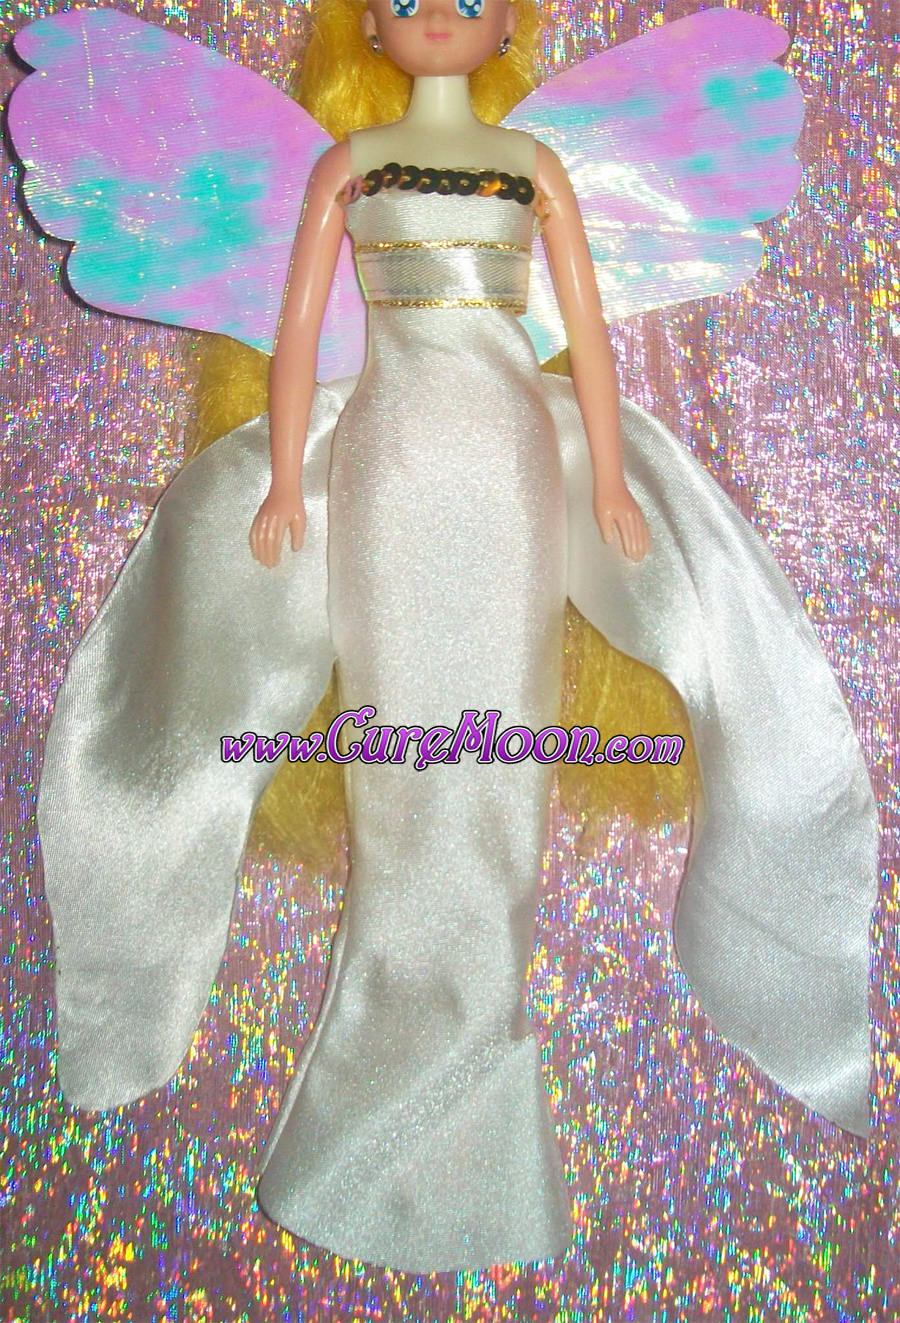 neo-queen-serenity-vestitino-dress-outfit-sailor-moon-bunnytsukino-curemoon-custom-handmade